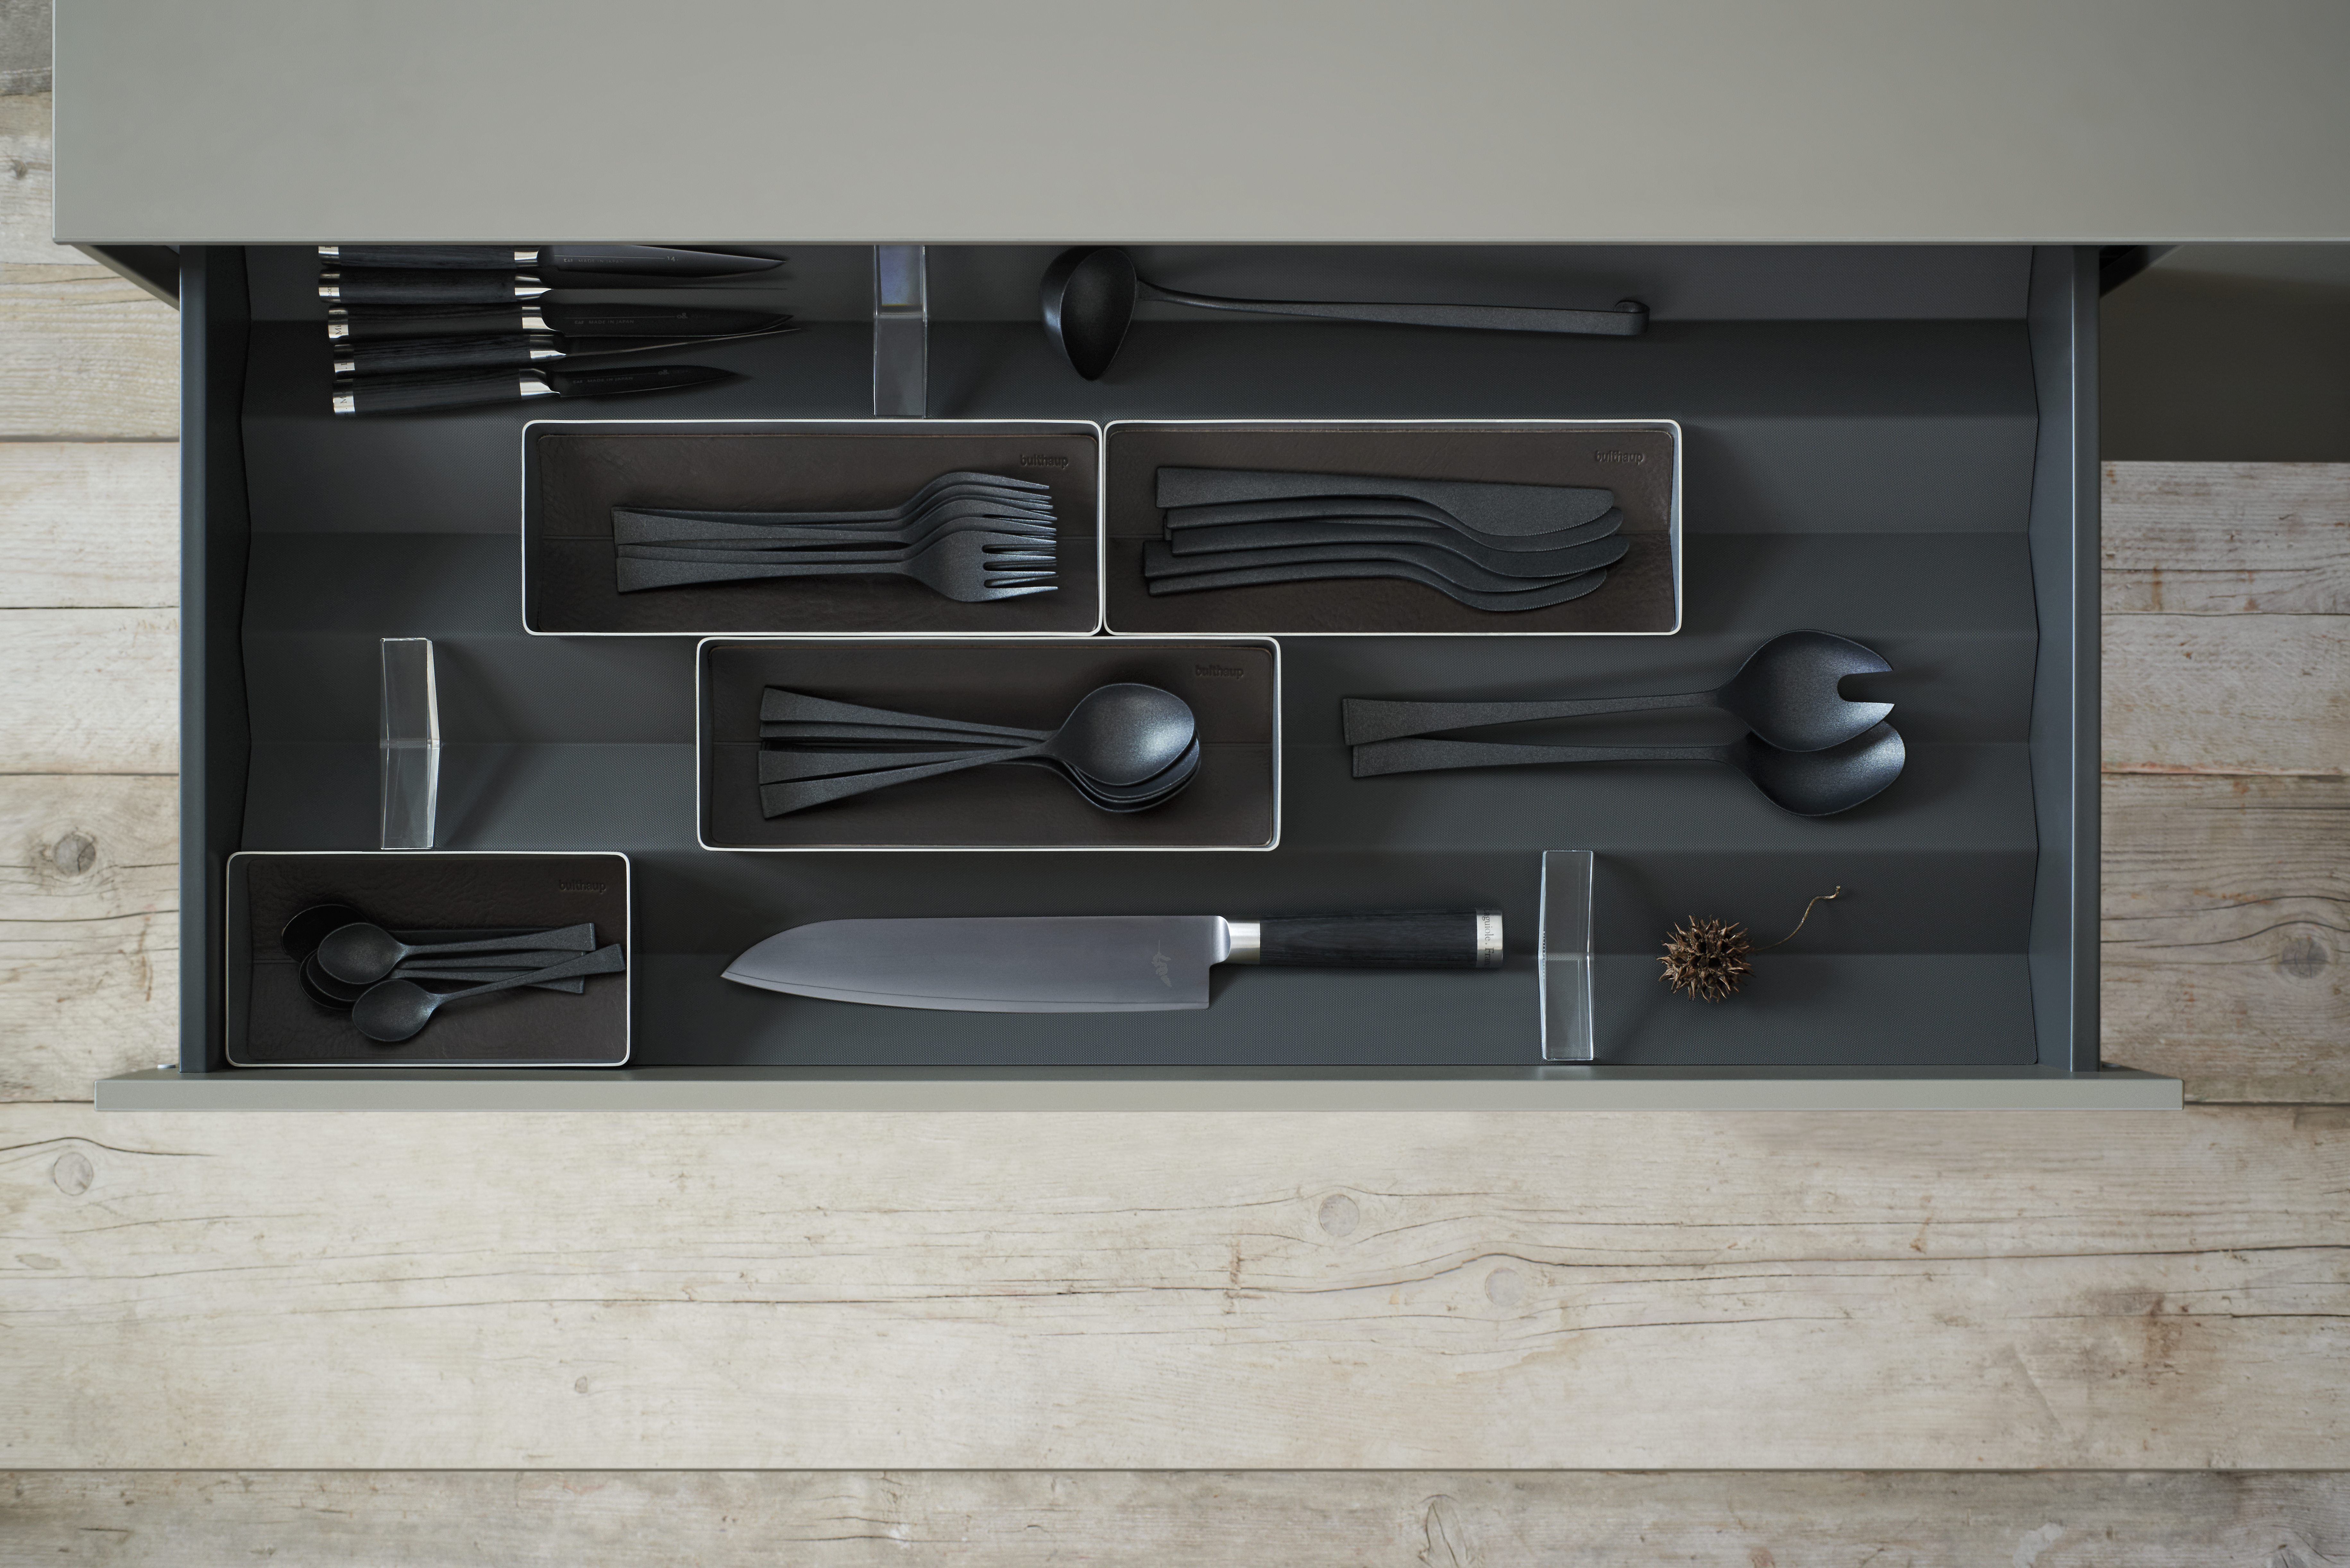 picture arresting and stunning liners drawer removing inspiration ideas kitchen for files